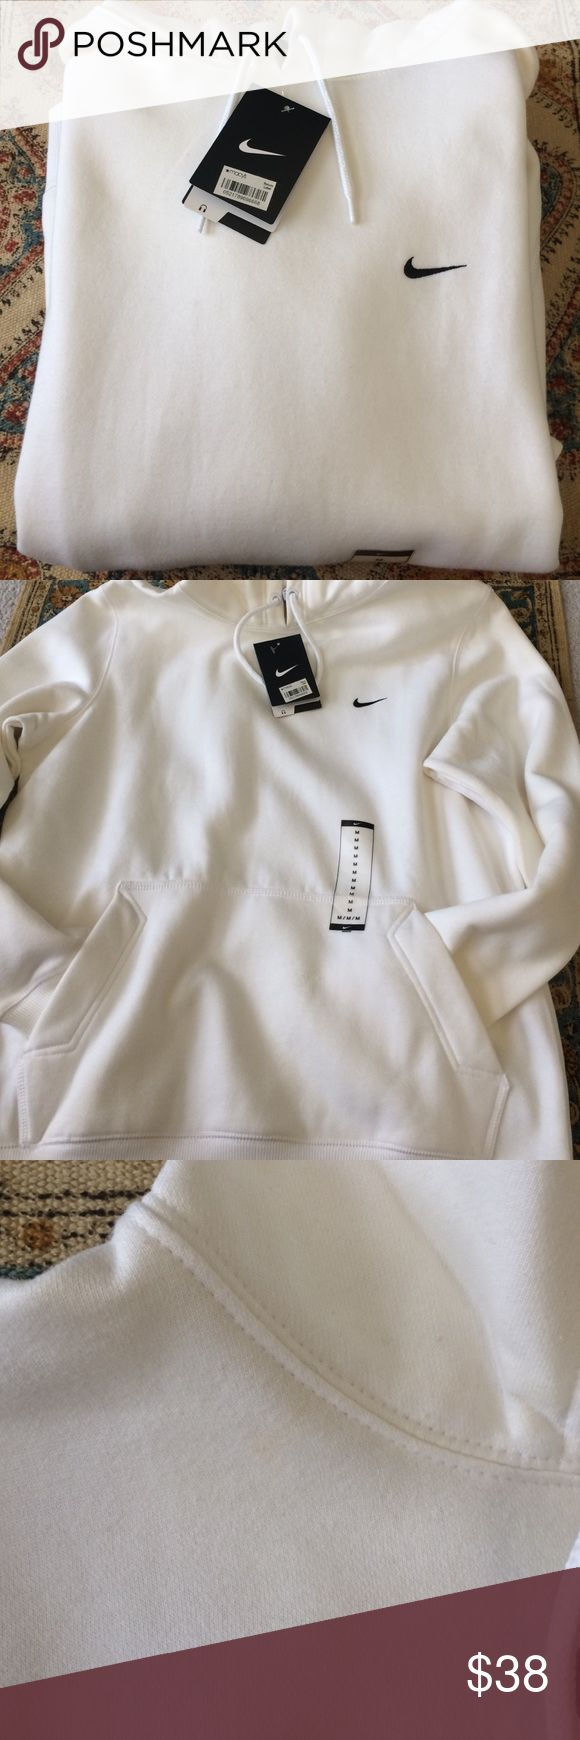 NWT WHITE NIKE HOODIE NWT, never been worn. This a men's hoodie size medium, but I wear them. Super soft and has an earphone hole. Oversized and perfect for that sport chic look. There are two stains on it, but they are very light and I haven't run it through the washer. I think it's dust from when I bought it. NO TRADES❌ ASK QUESTIONS OFFERS CONSIDERED ✨ When made through button. Check out my closet for other awesome items!  Nike Tops Sweatshirts & Hoodies